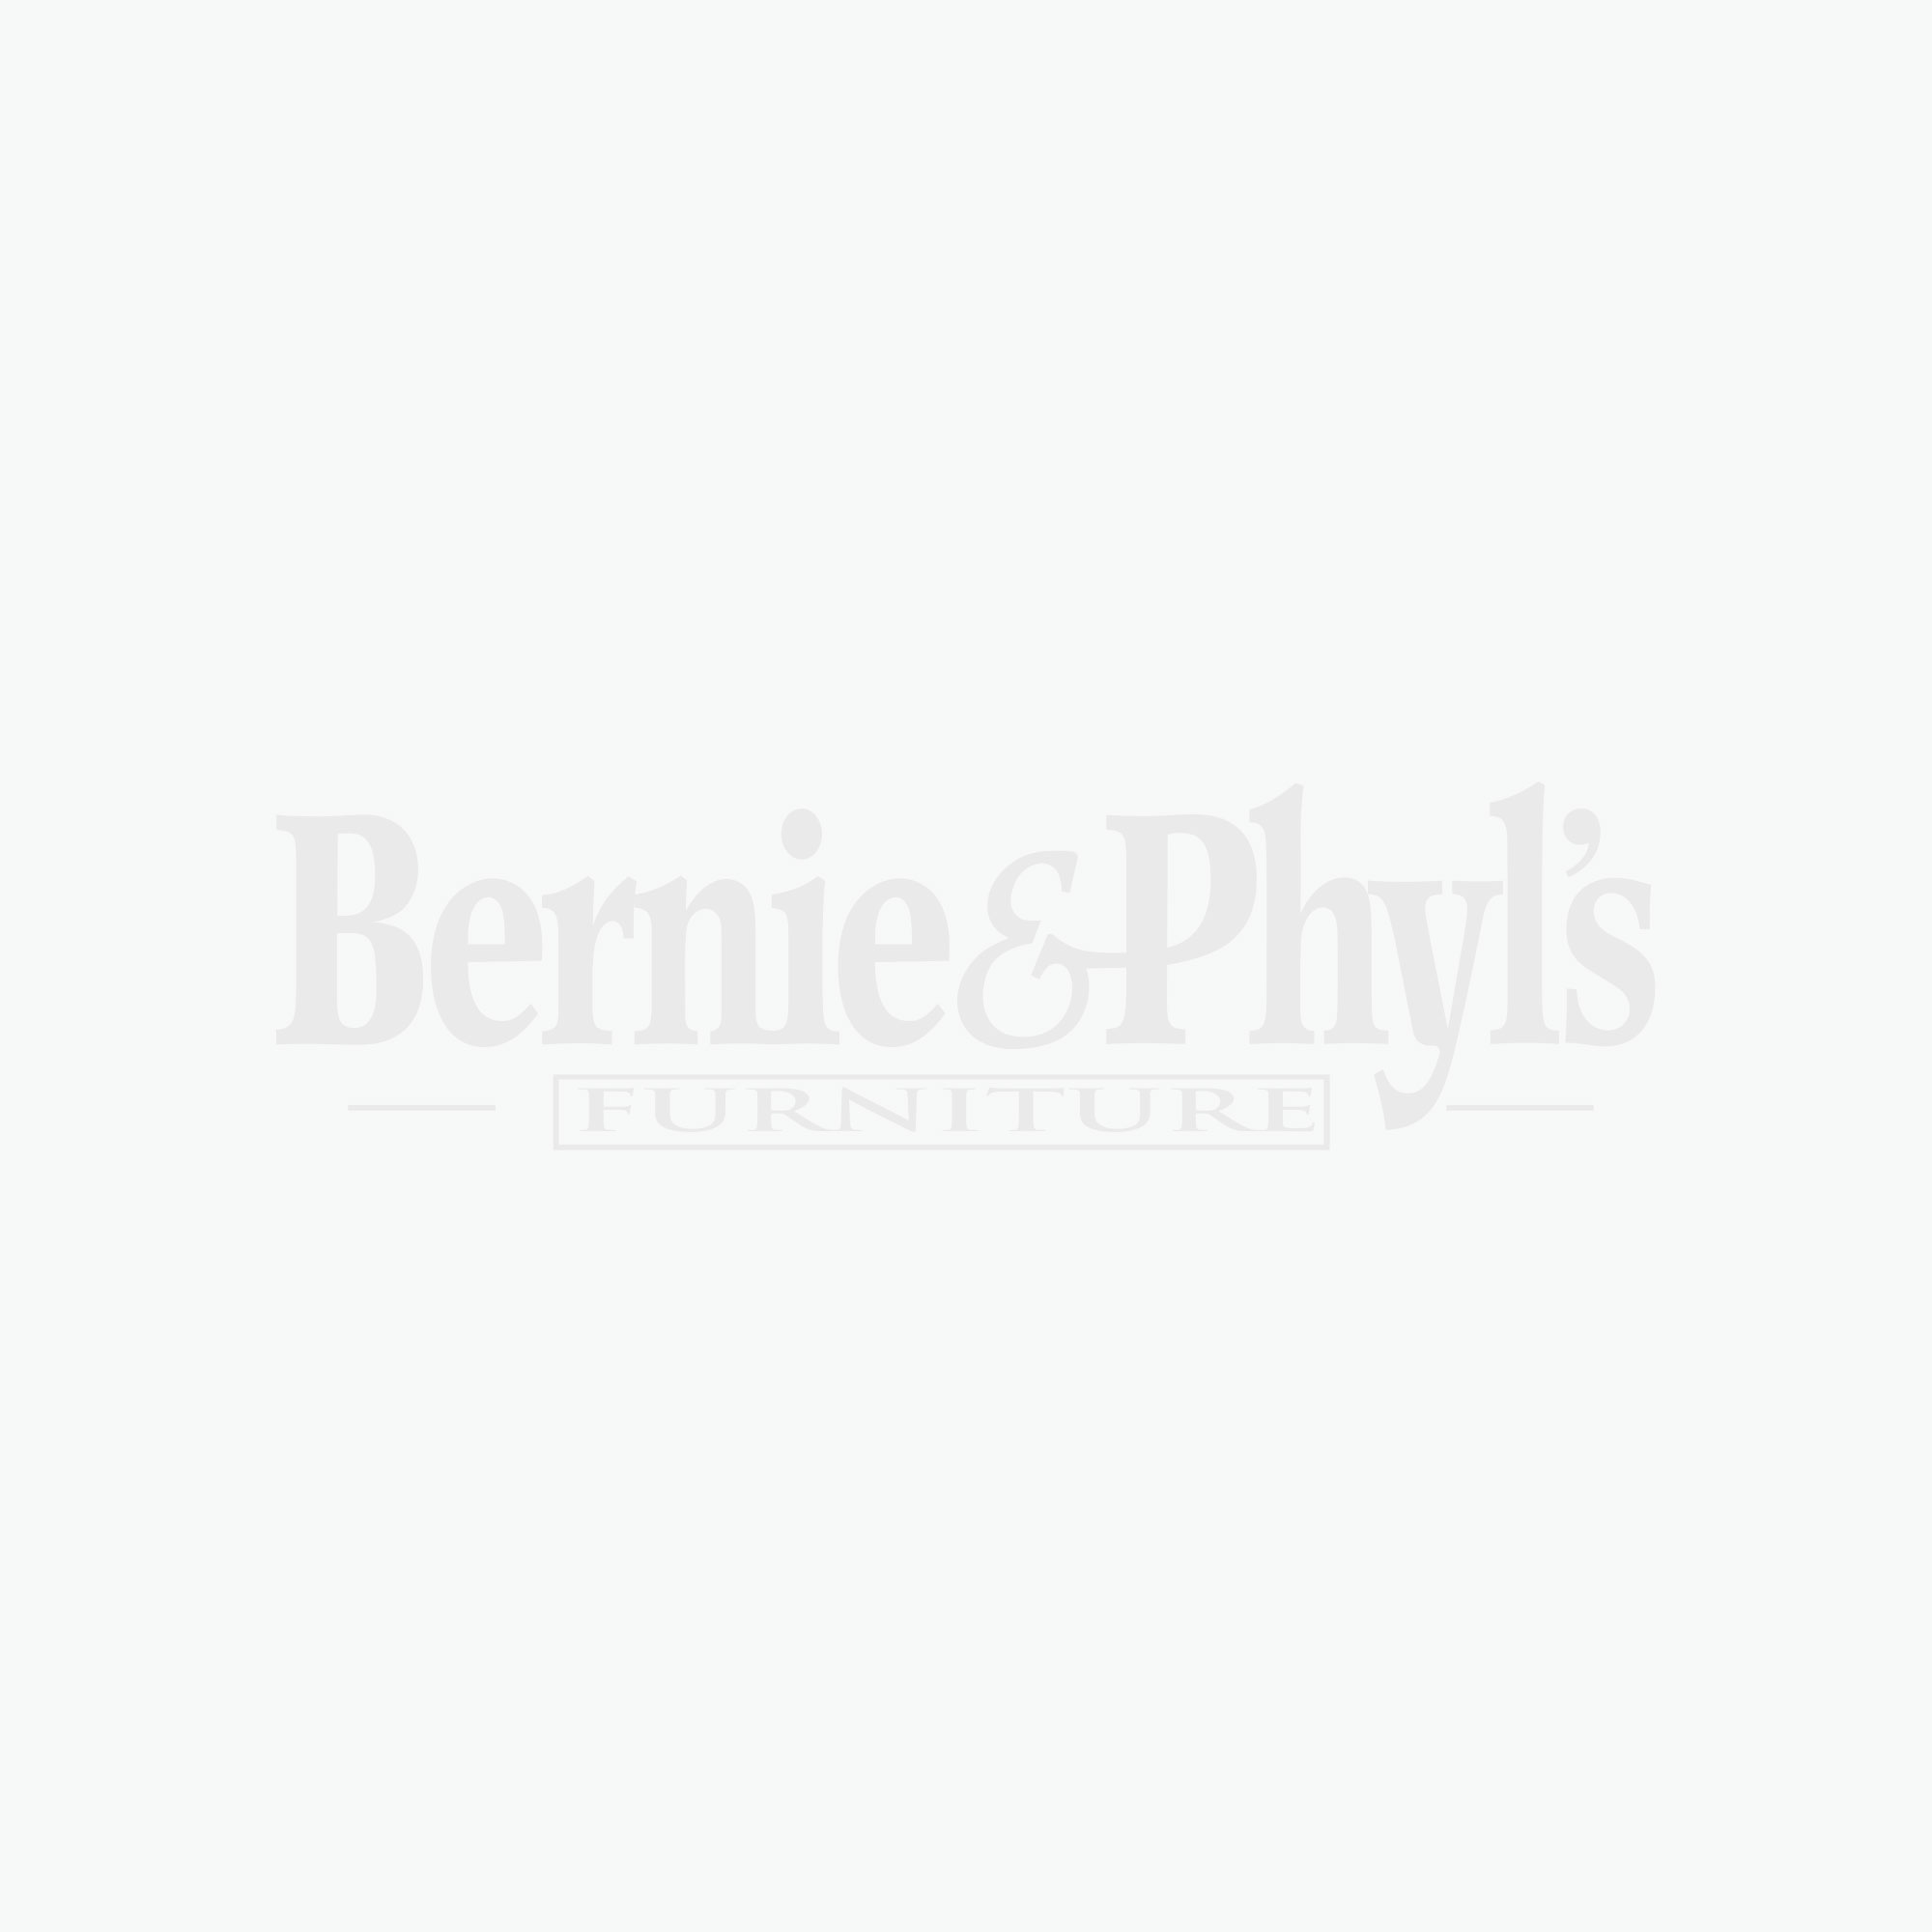 Armstrong Bedroom Dresser, Mirror, Chest